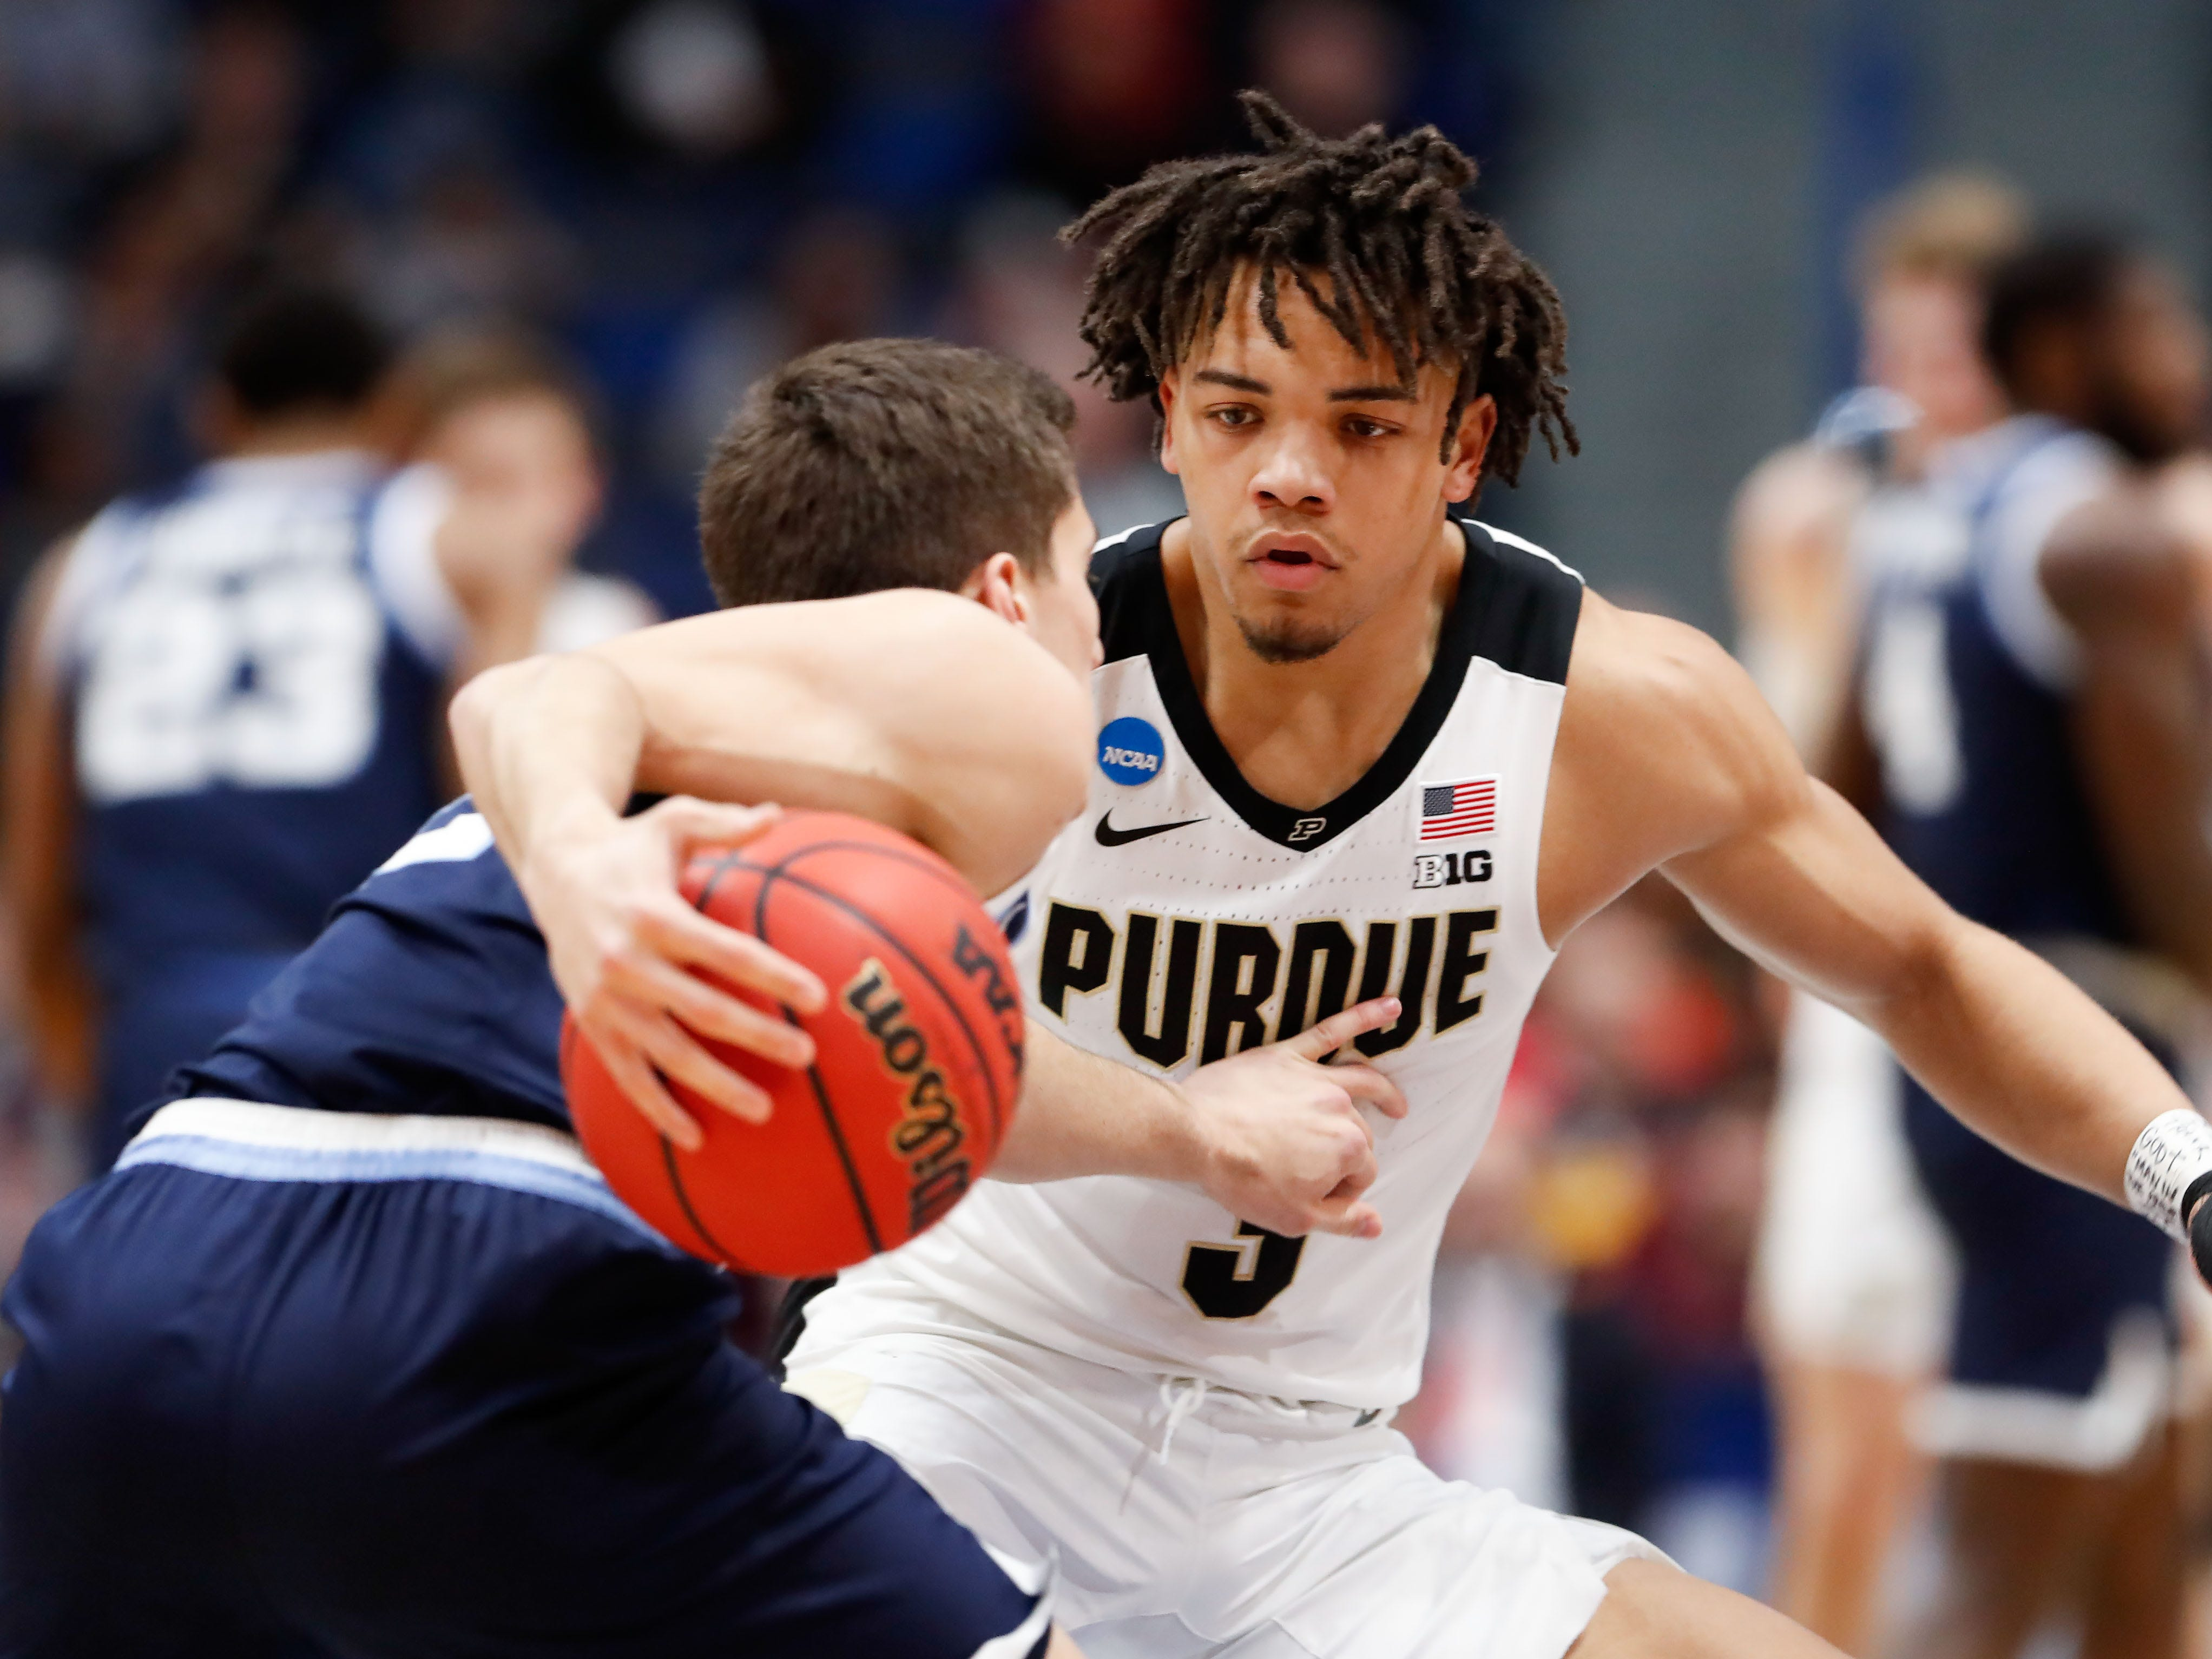 Round of 32: Purdue Boilermakers guard Carsen Edwards defends Villanova Wildcats guard Collin Gillespie.